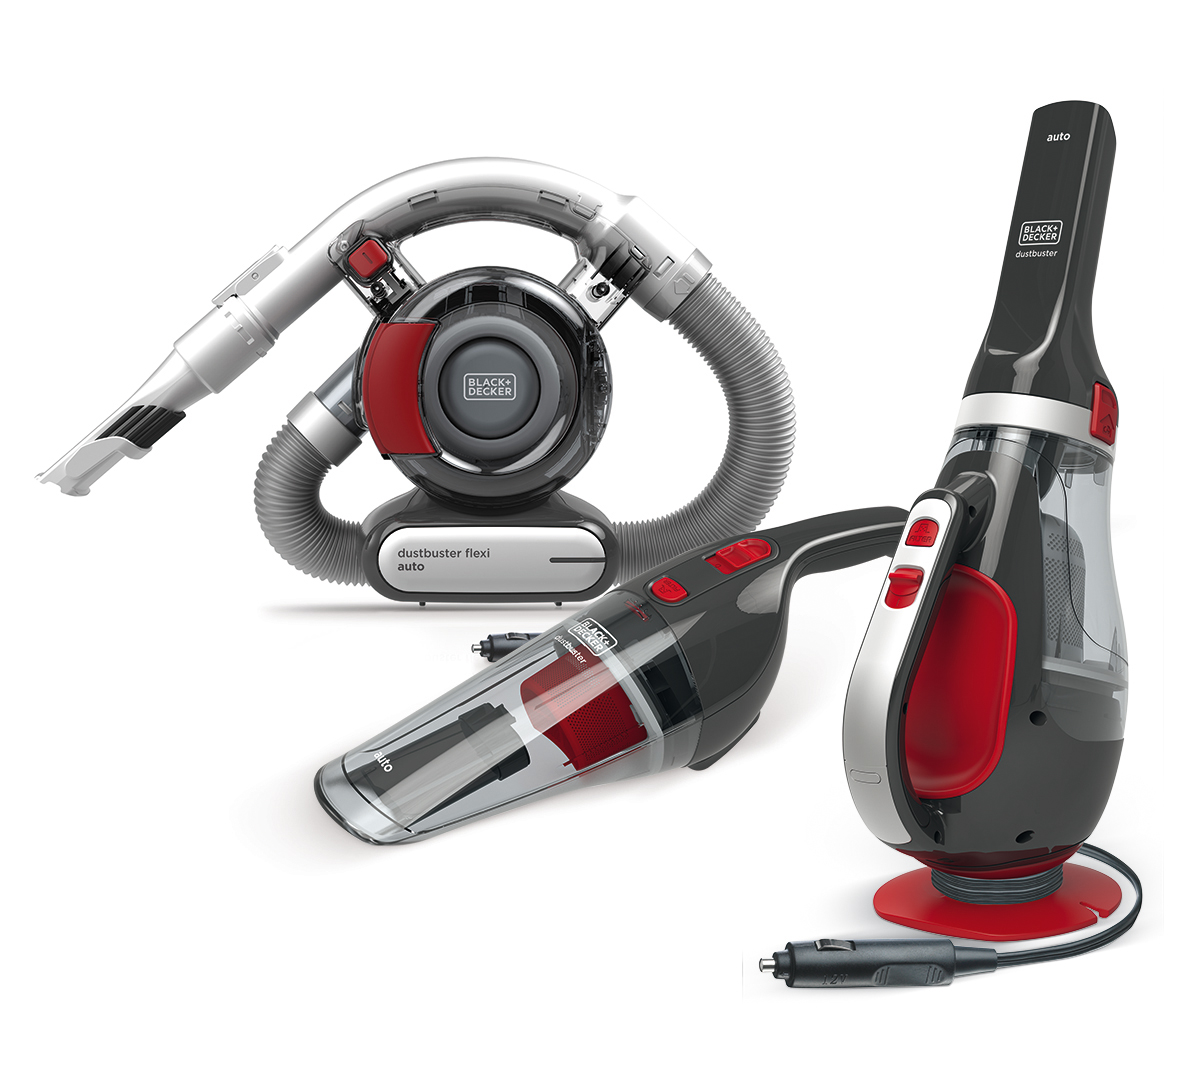 Dustbuster® Auto™ di BLACK+DECKER